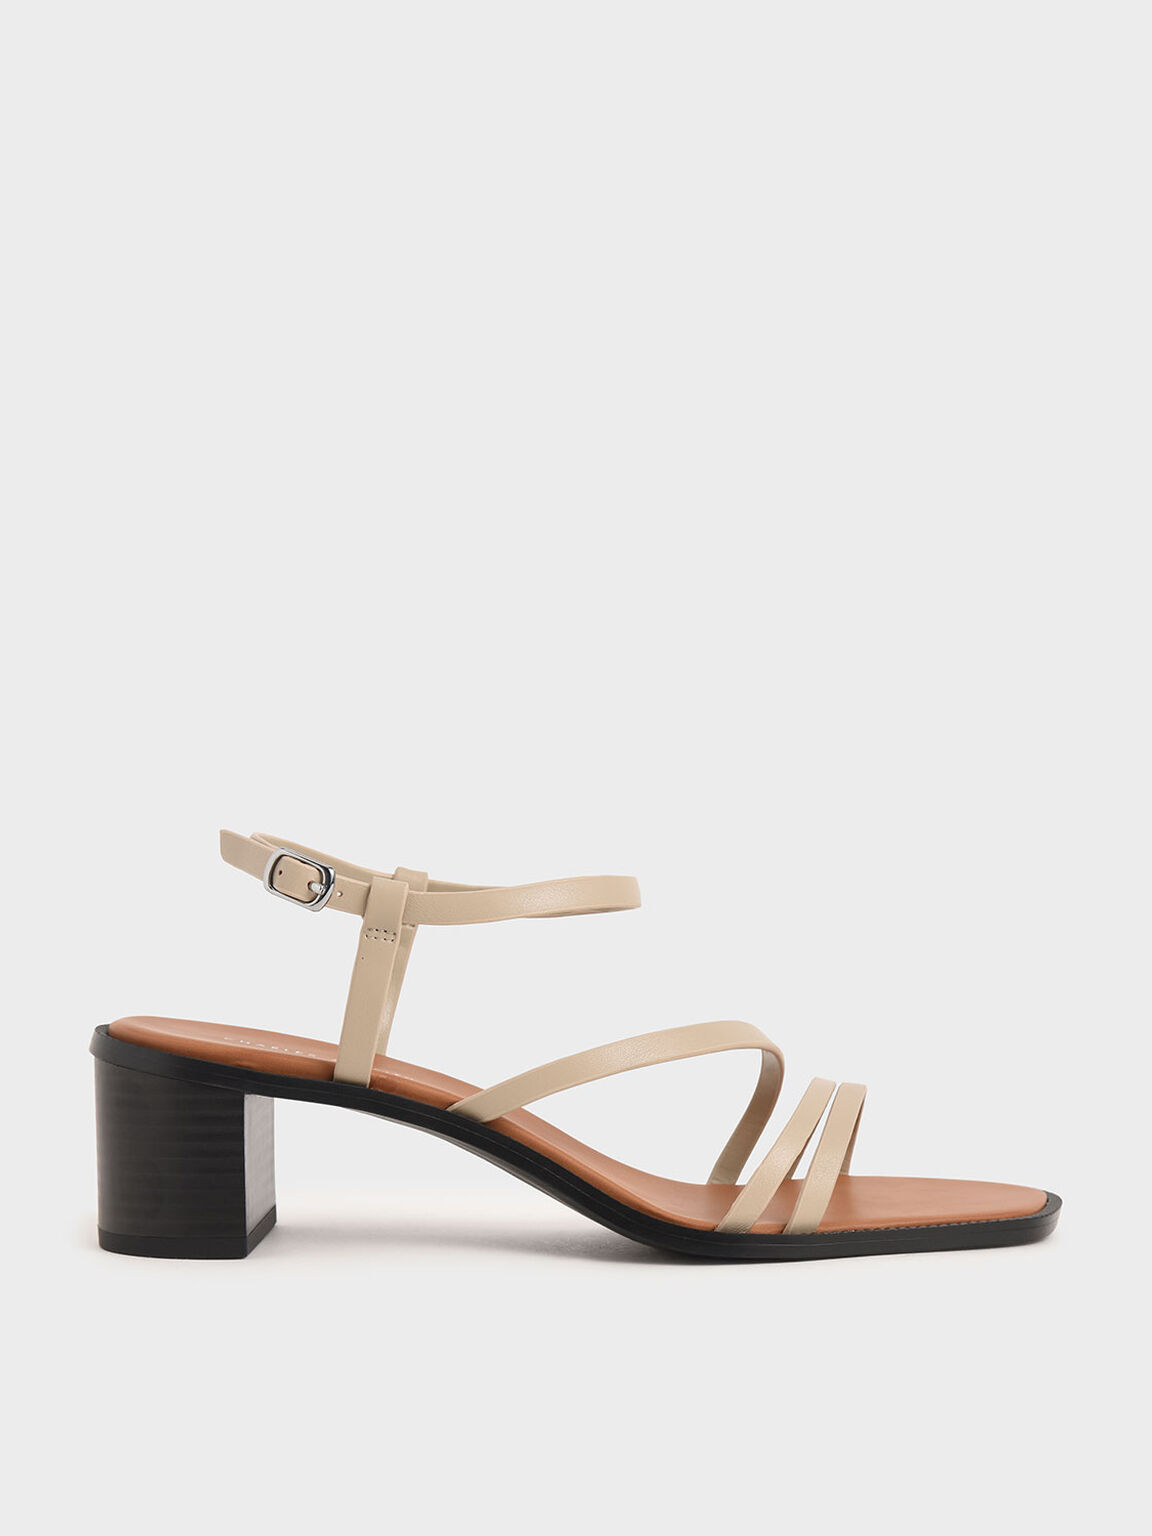 Strappy Open Toe Heeled Sandals, Beige, hi-res